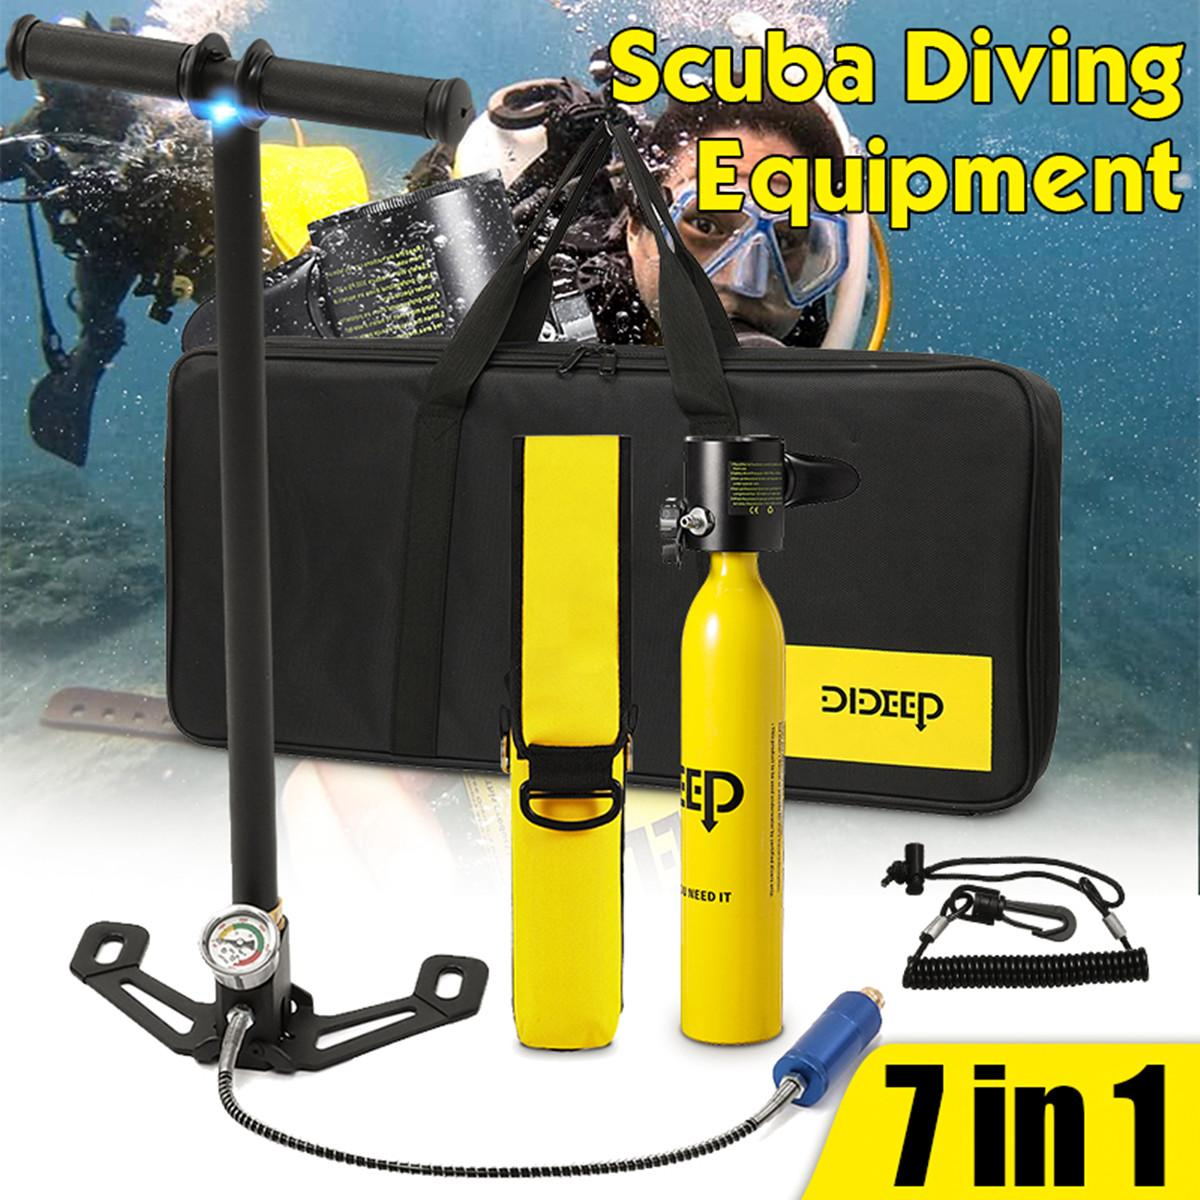 DIDEEP Diving System Mini Scuba Oxygen Cylinder Air Tank Scuba Reserve Air Tank Pump Snorkeling Gear Snorkeling Diving Equipment